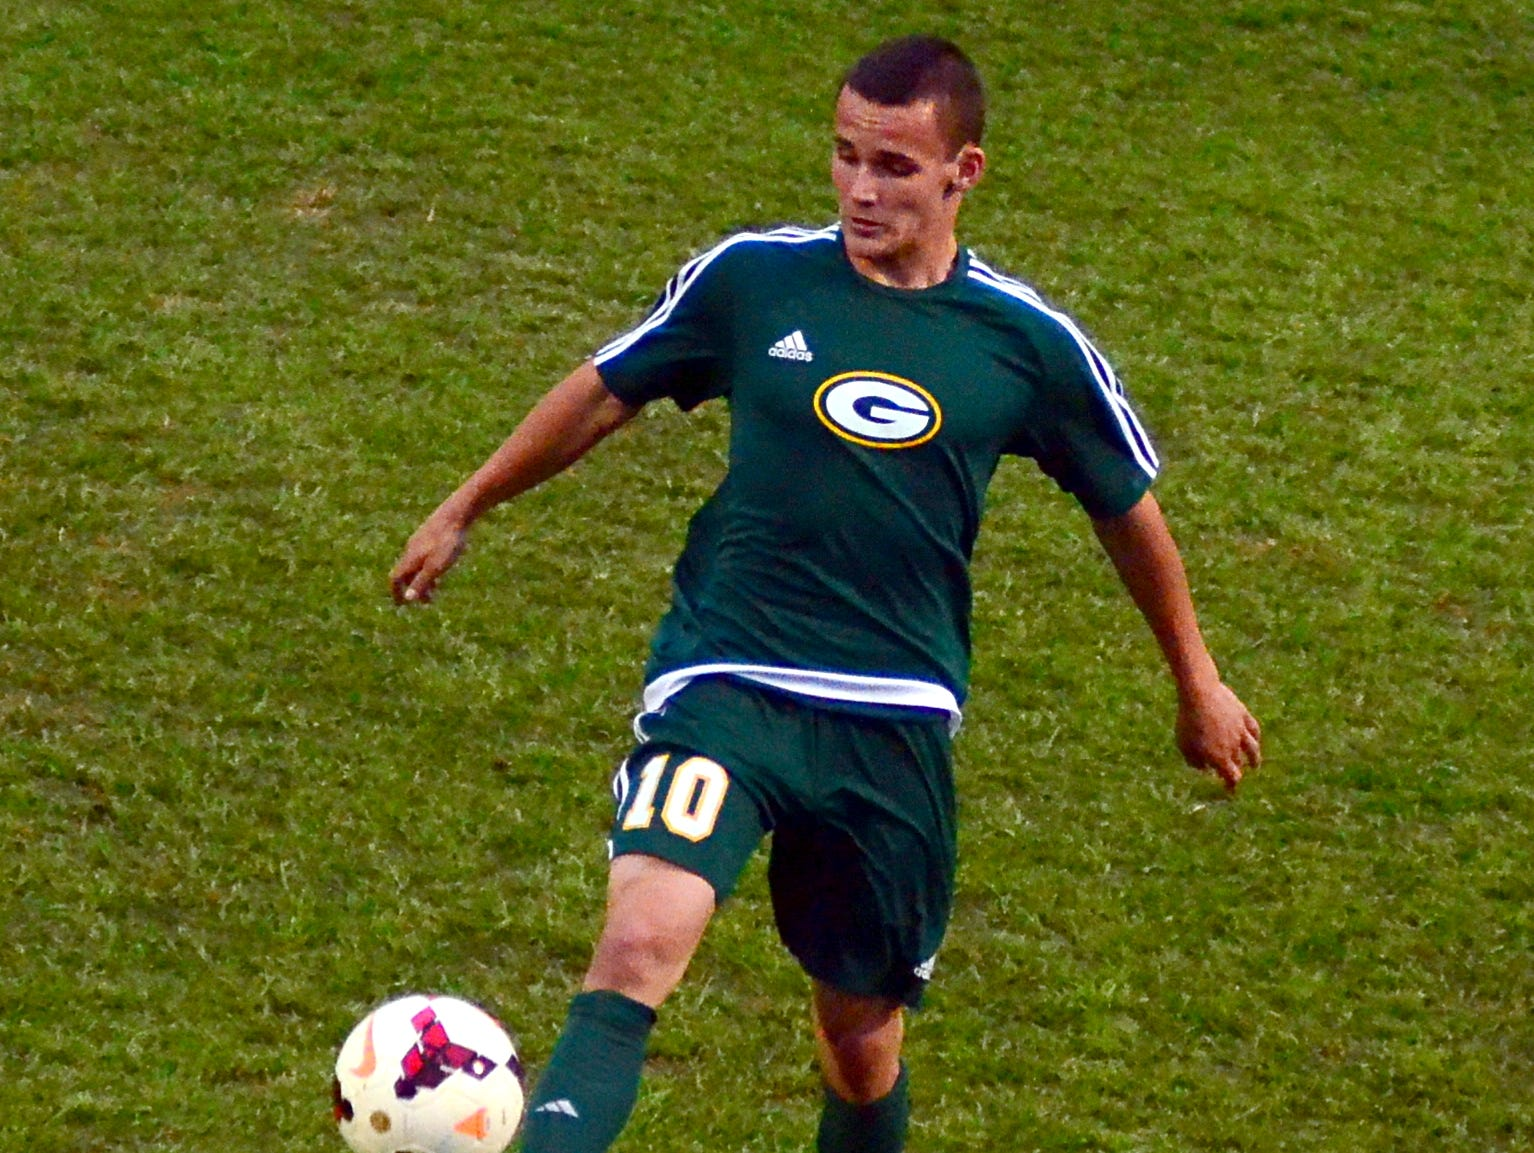 Gallatin High senior Cameron Martin gains possession during the first half of Friday evening's 2-0 loss at Station Camp.